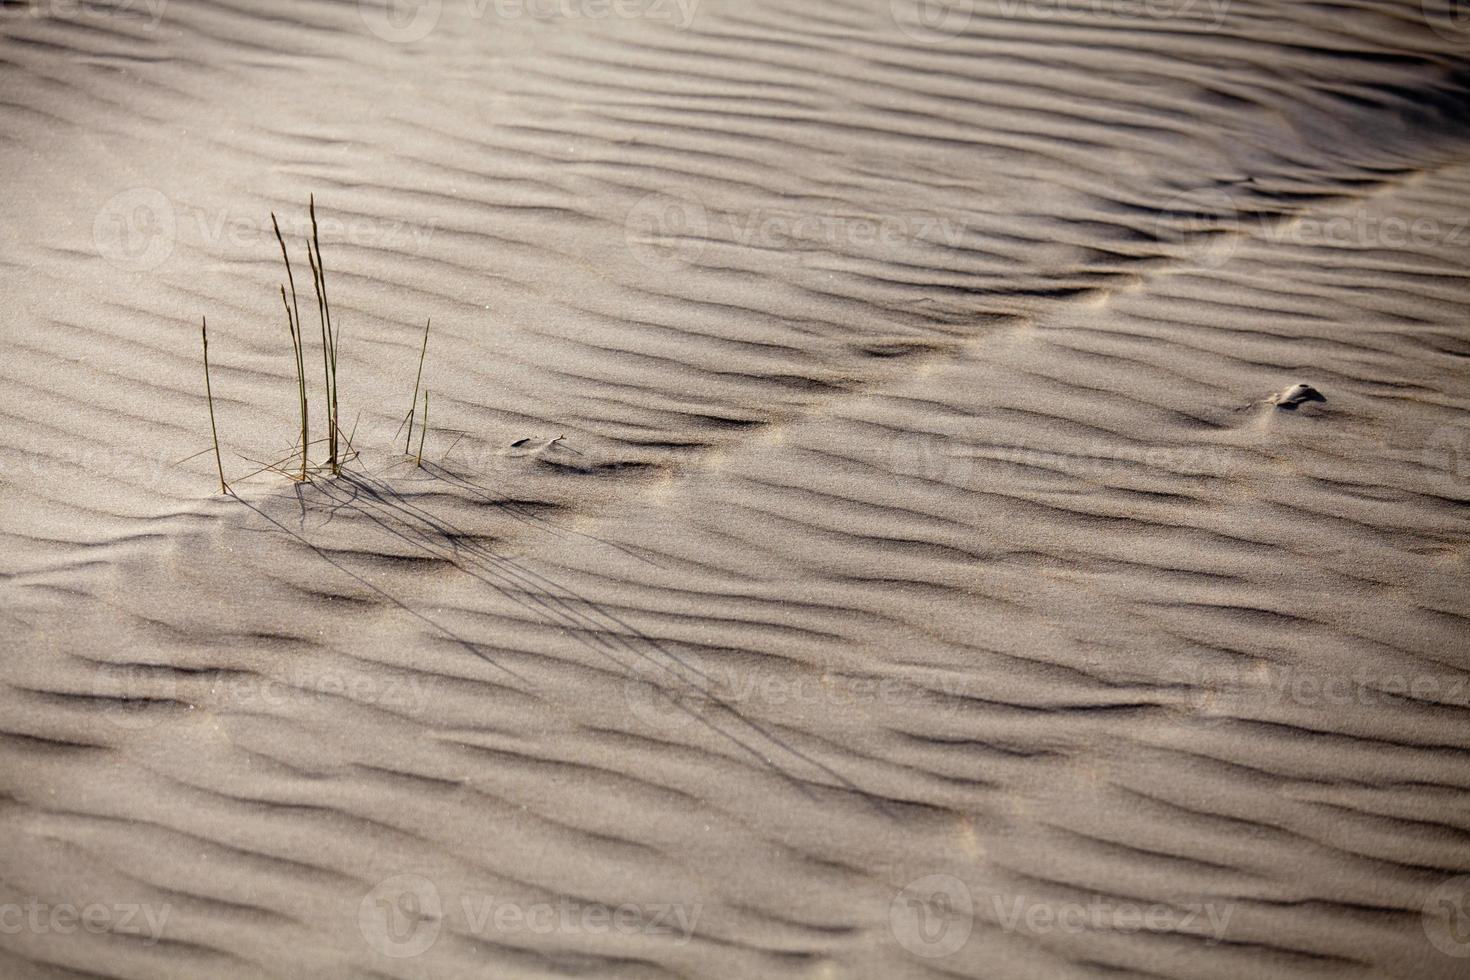 Grass growing from the sand photo